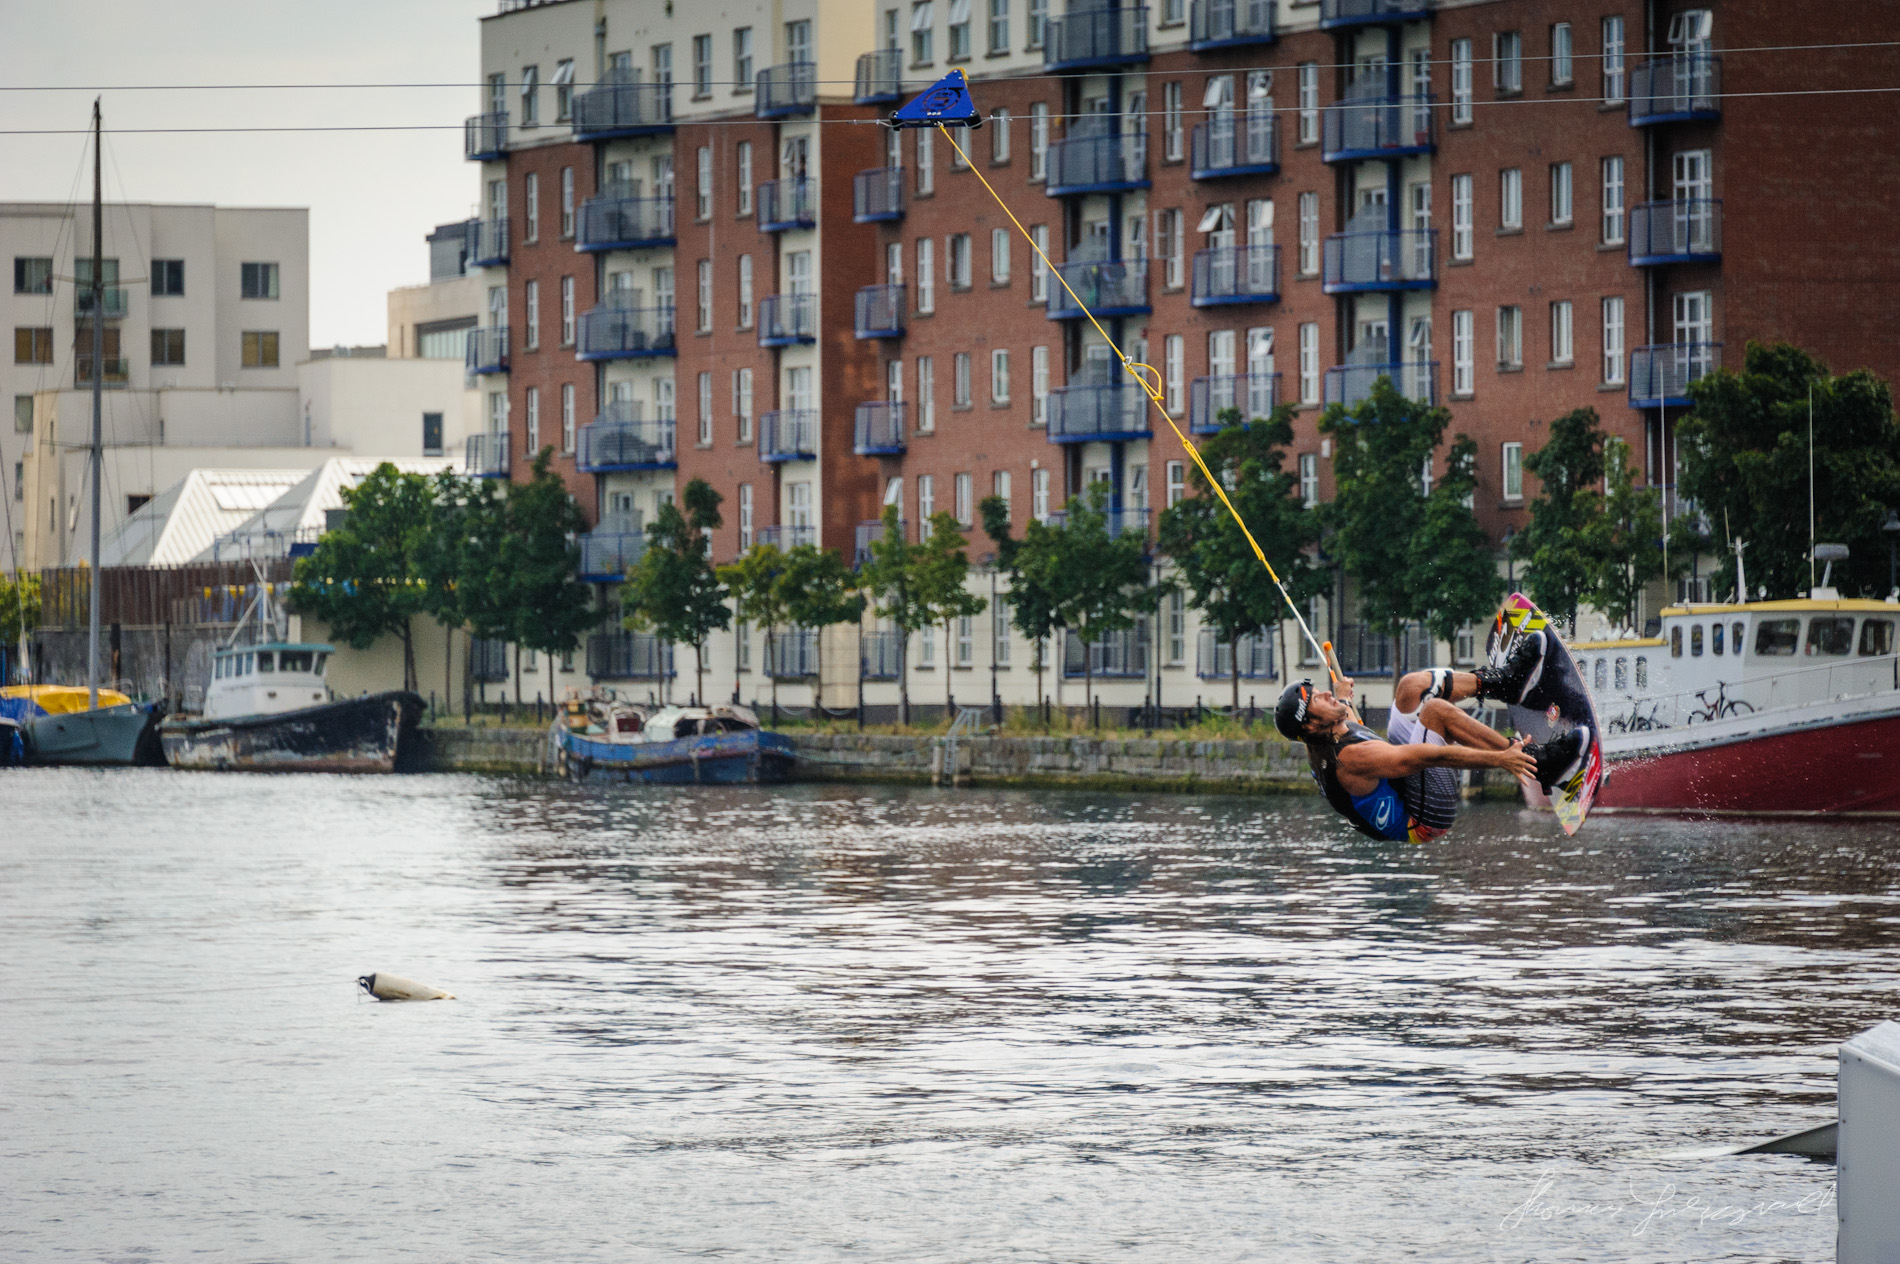 Wake boarded Catches Air at the Dublin Tall Ships Festival